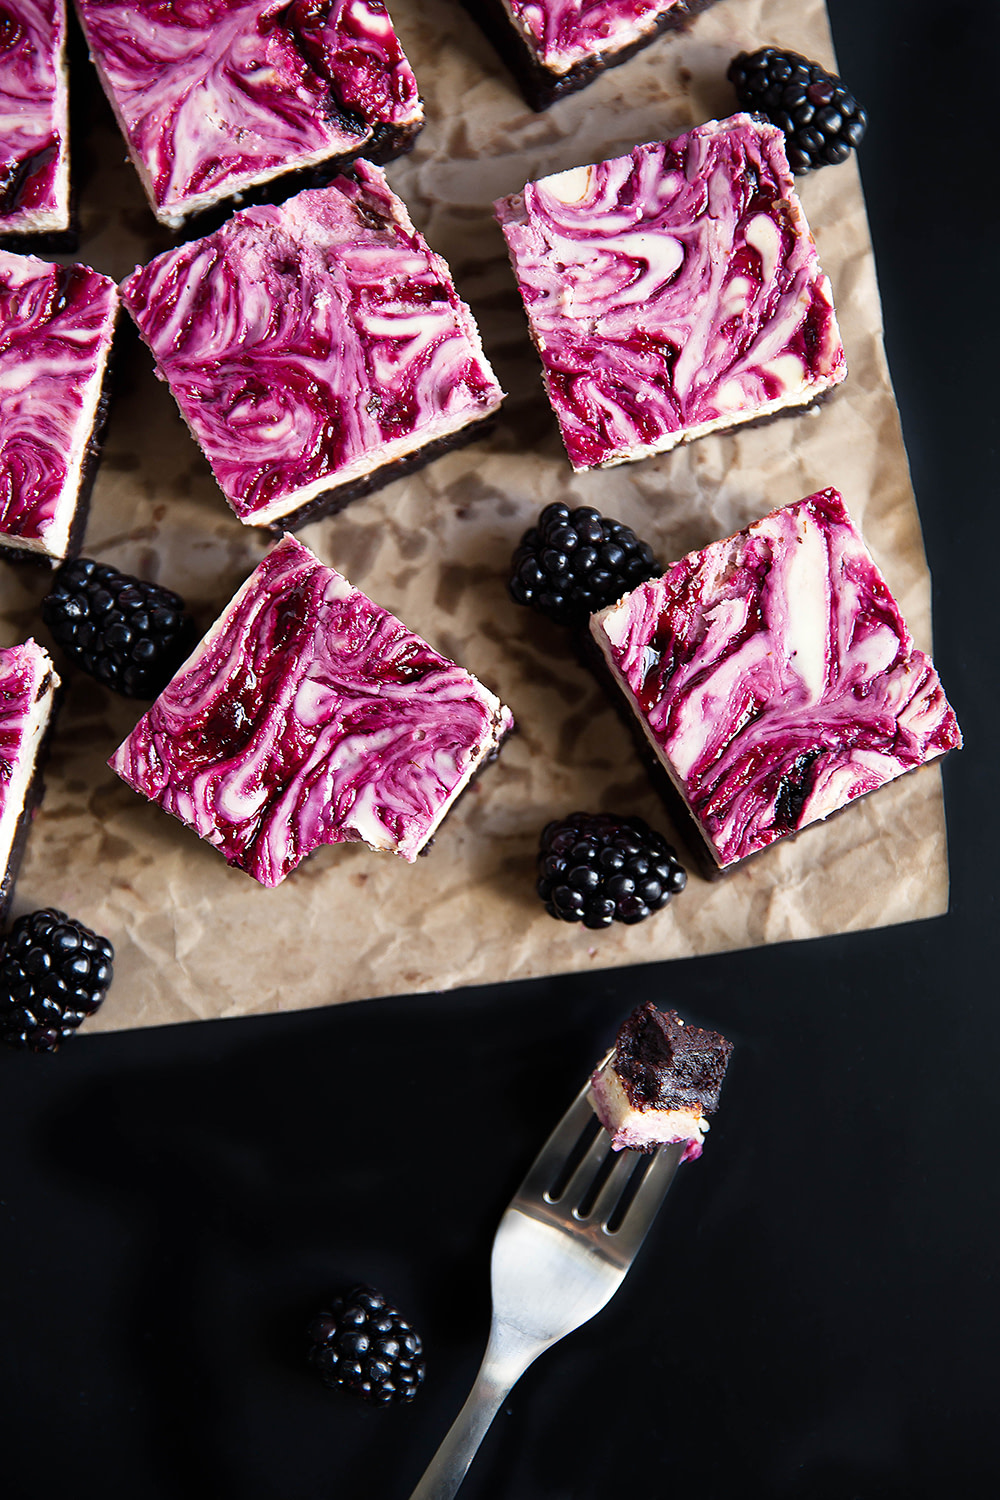 Appliance City - Blackberry Season - Recipes